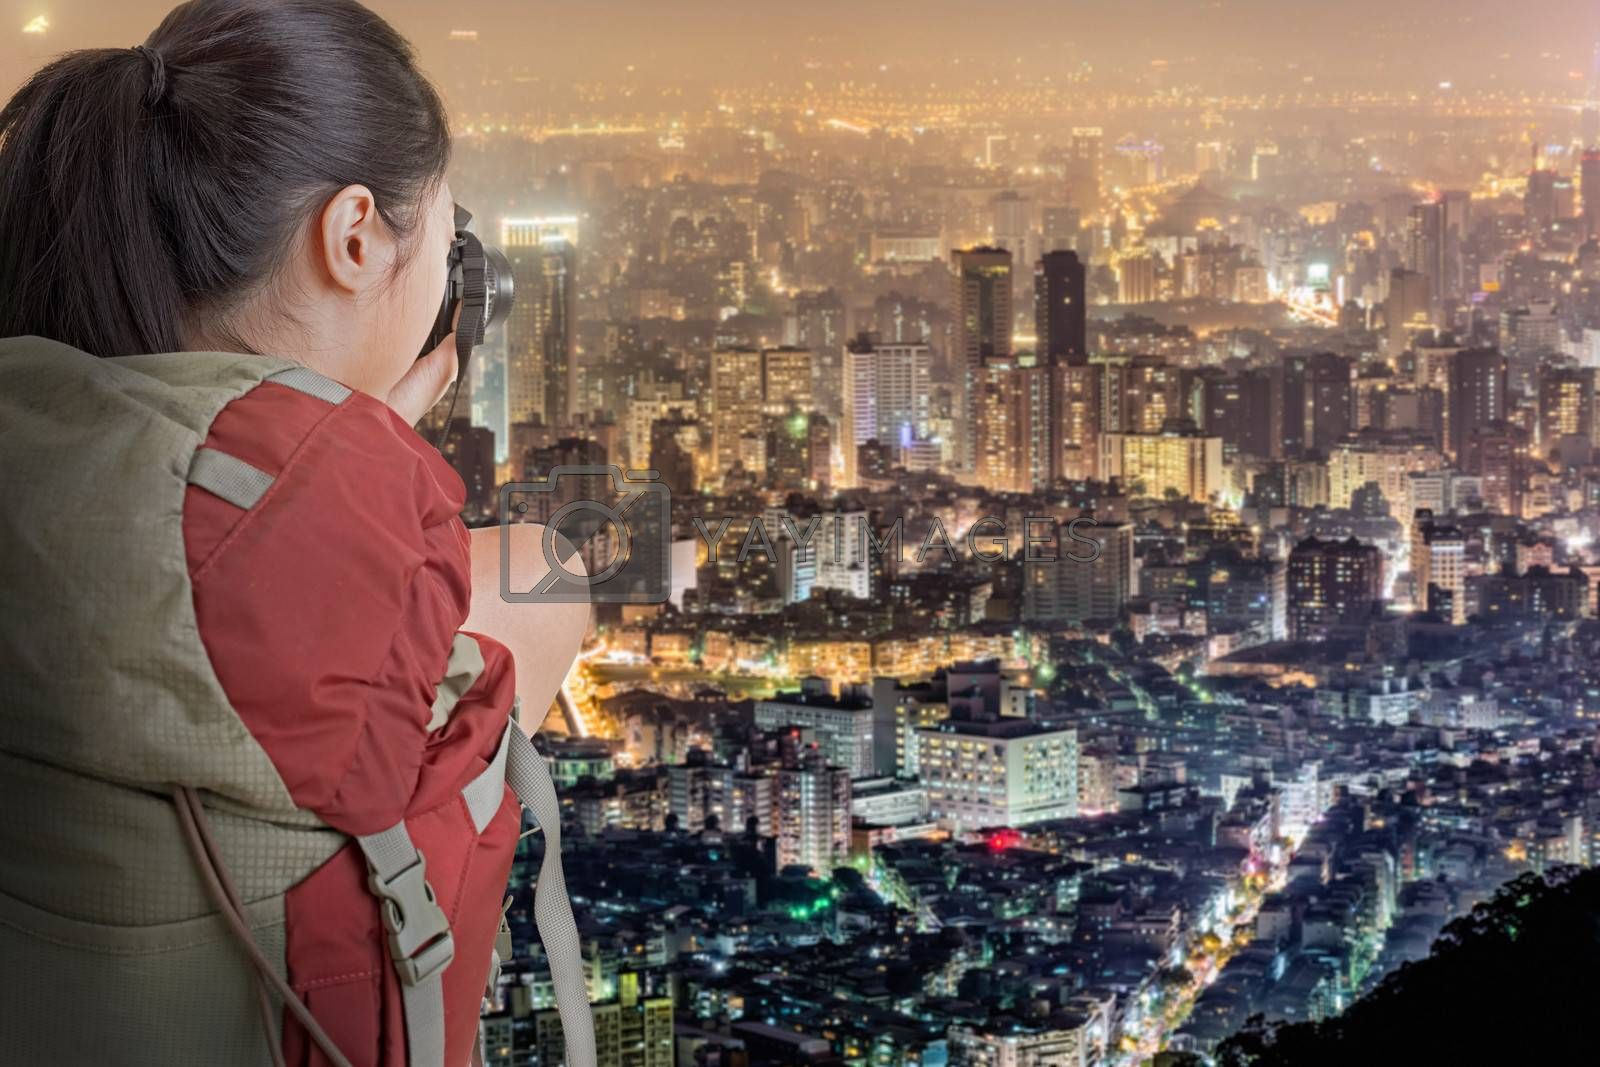 Young backpacker travel and take picture of city night scene in Taipei, Taiwan.